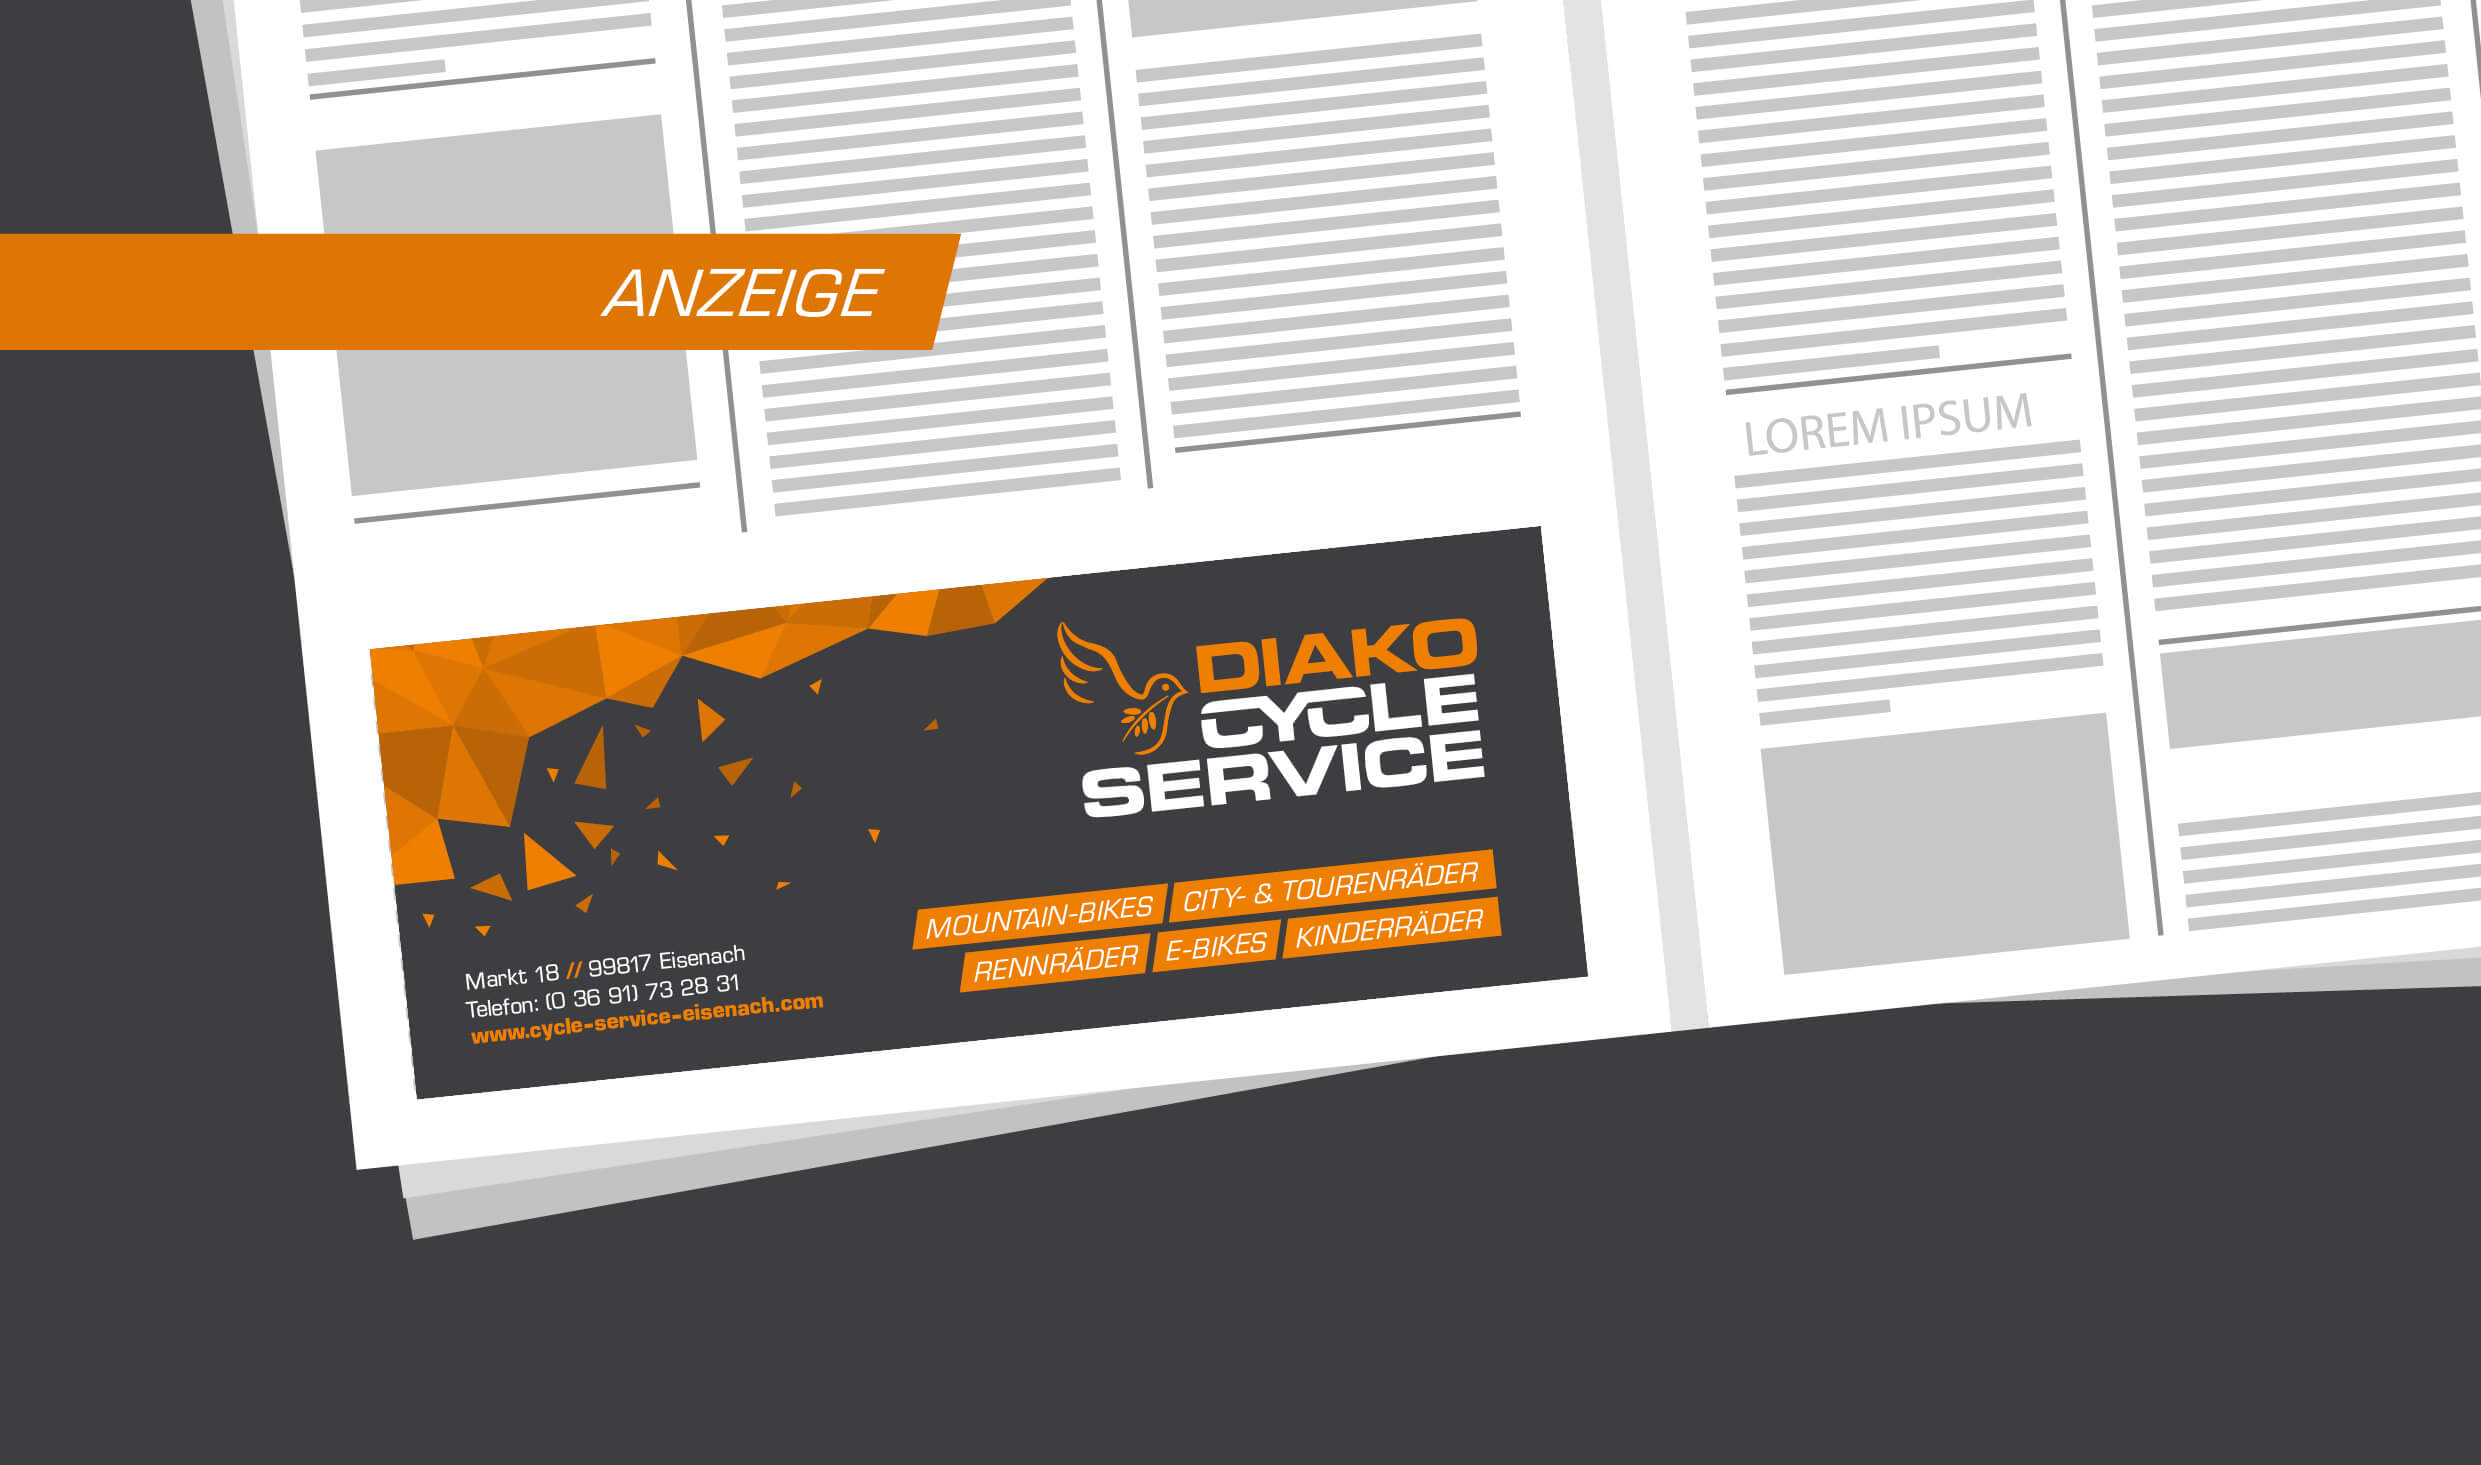 Cycle Service – Anzeige